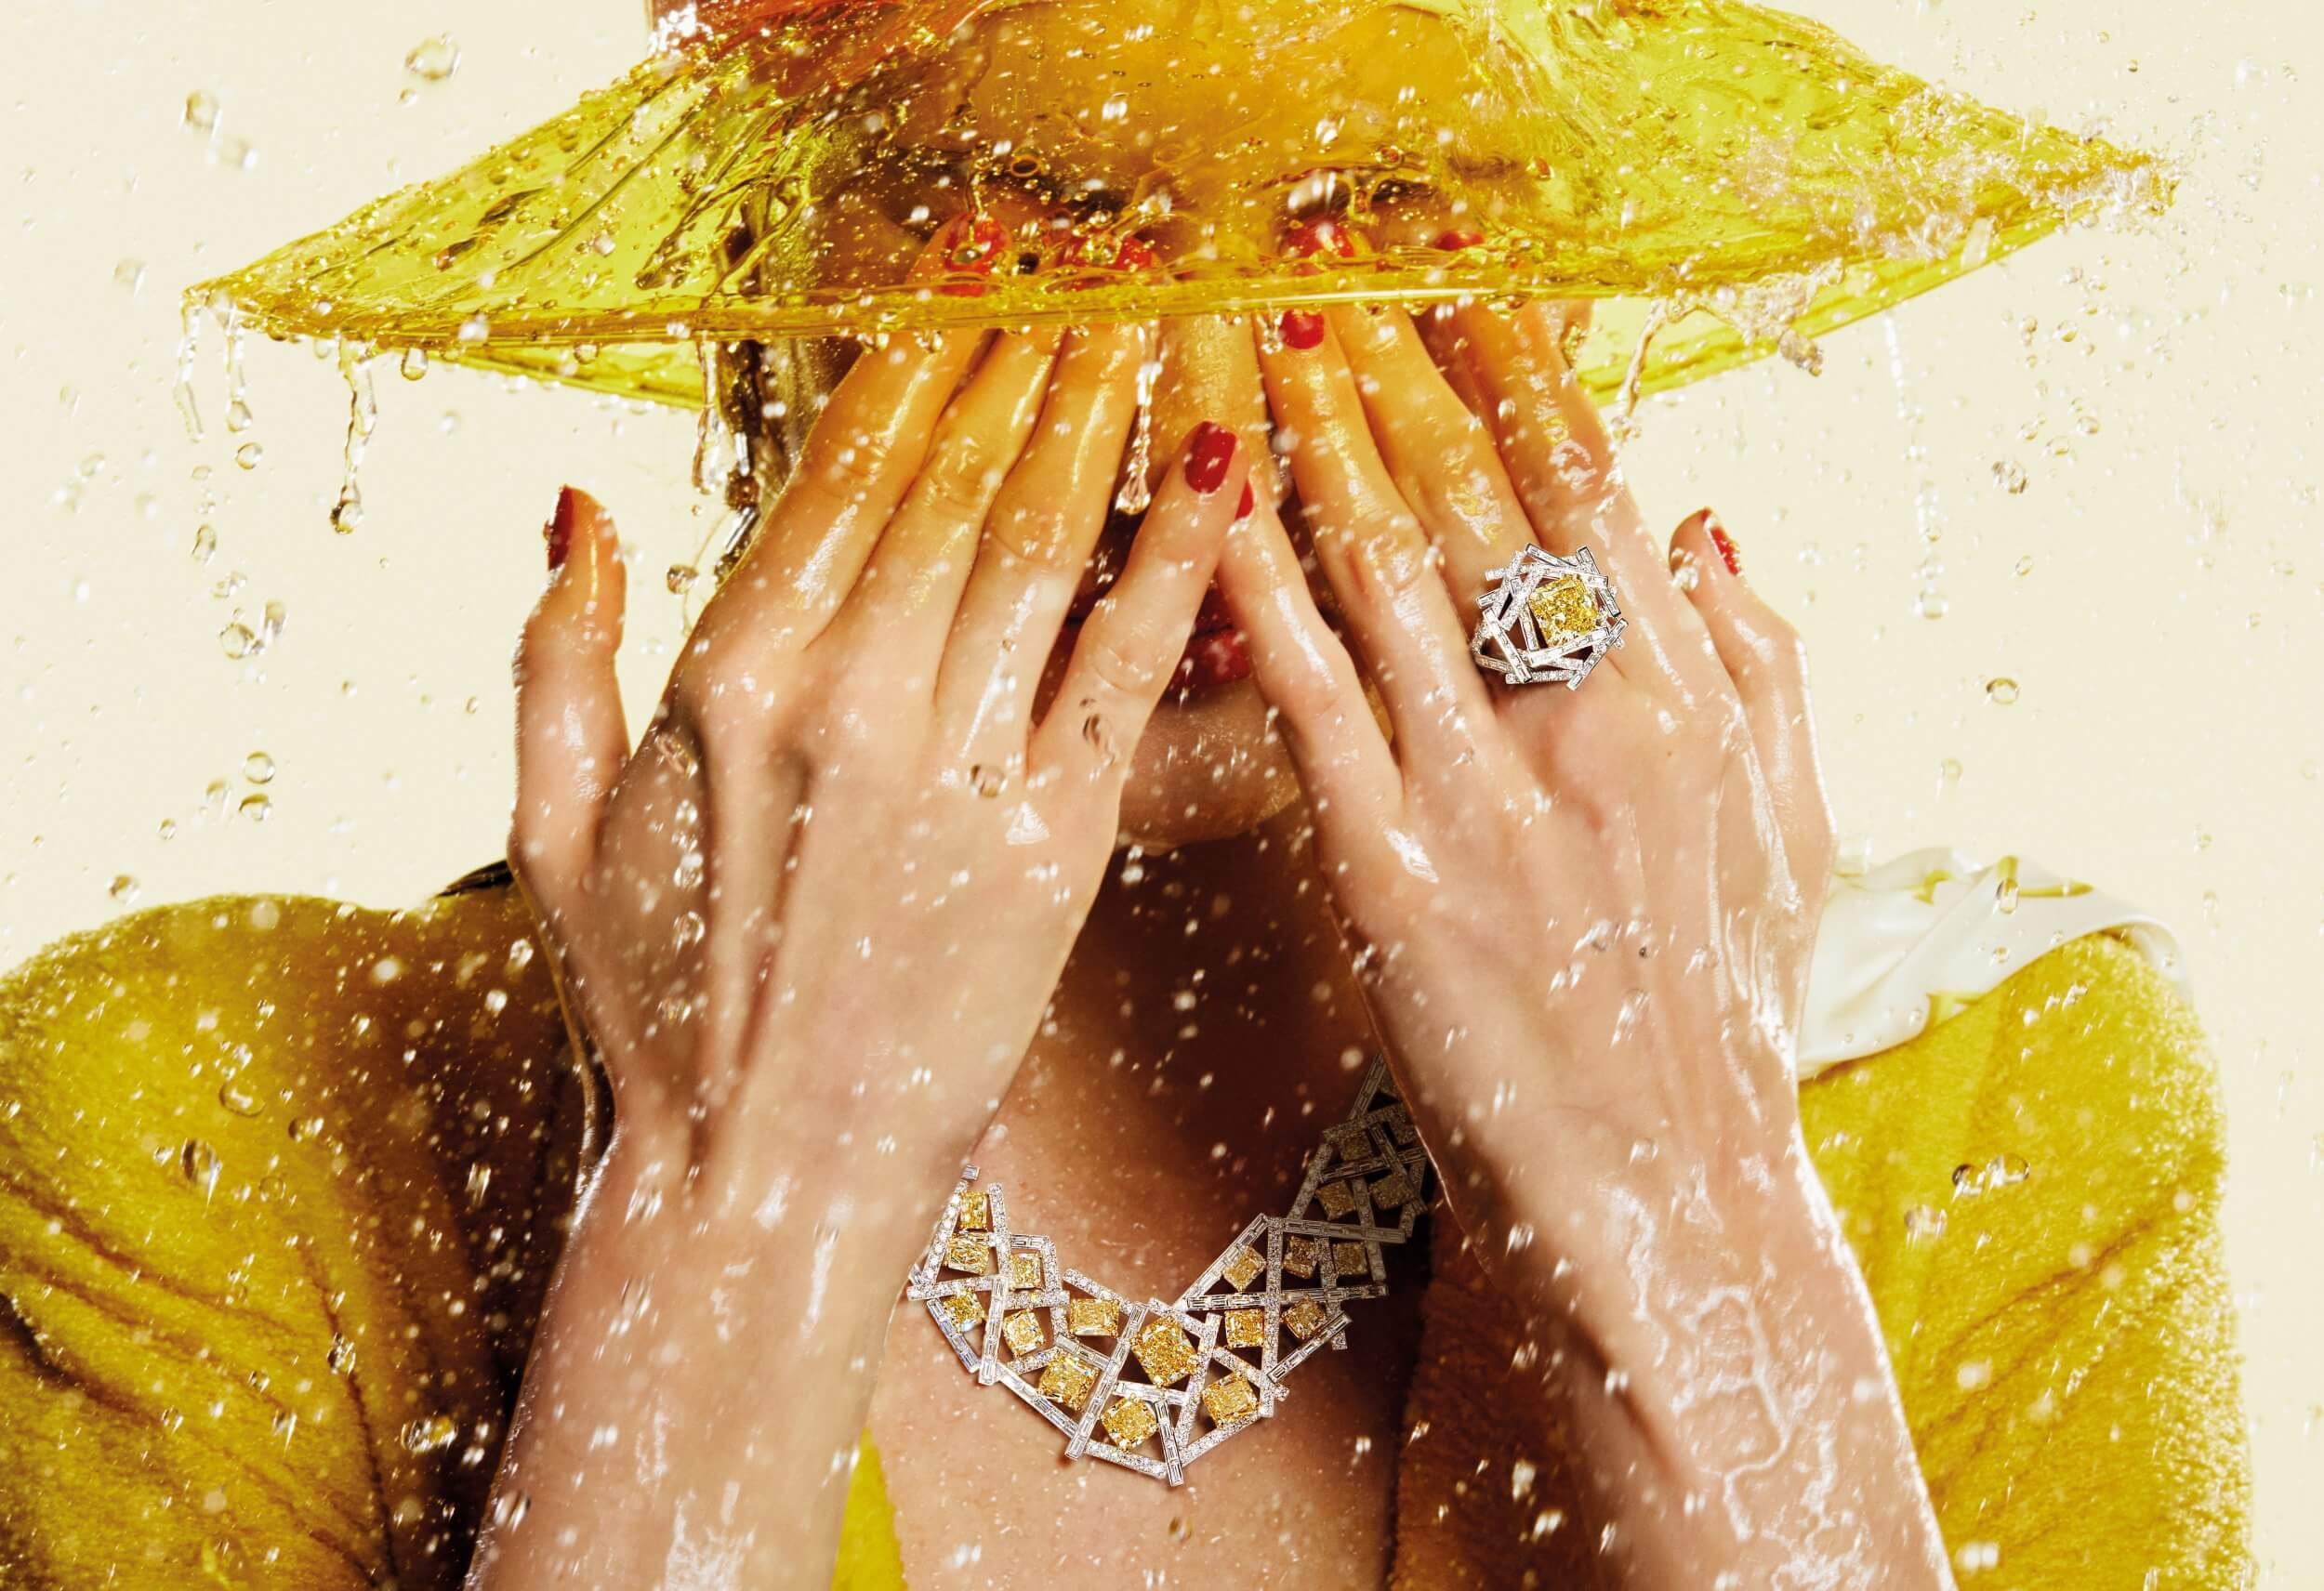 A model wearing Graff Threads Collection Yellow and White Diamond Ring and Necklace under rain